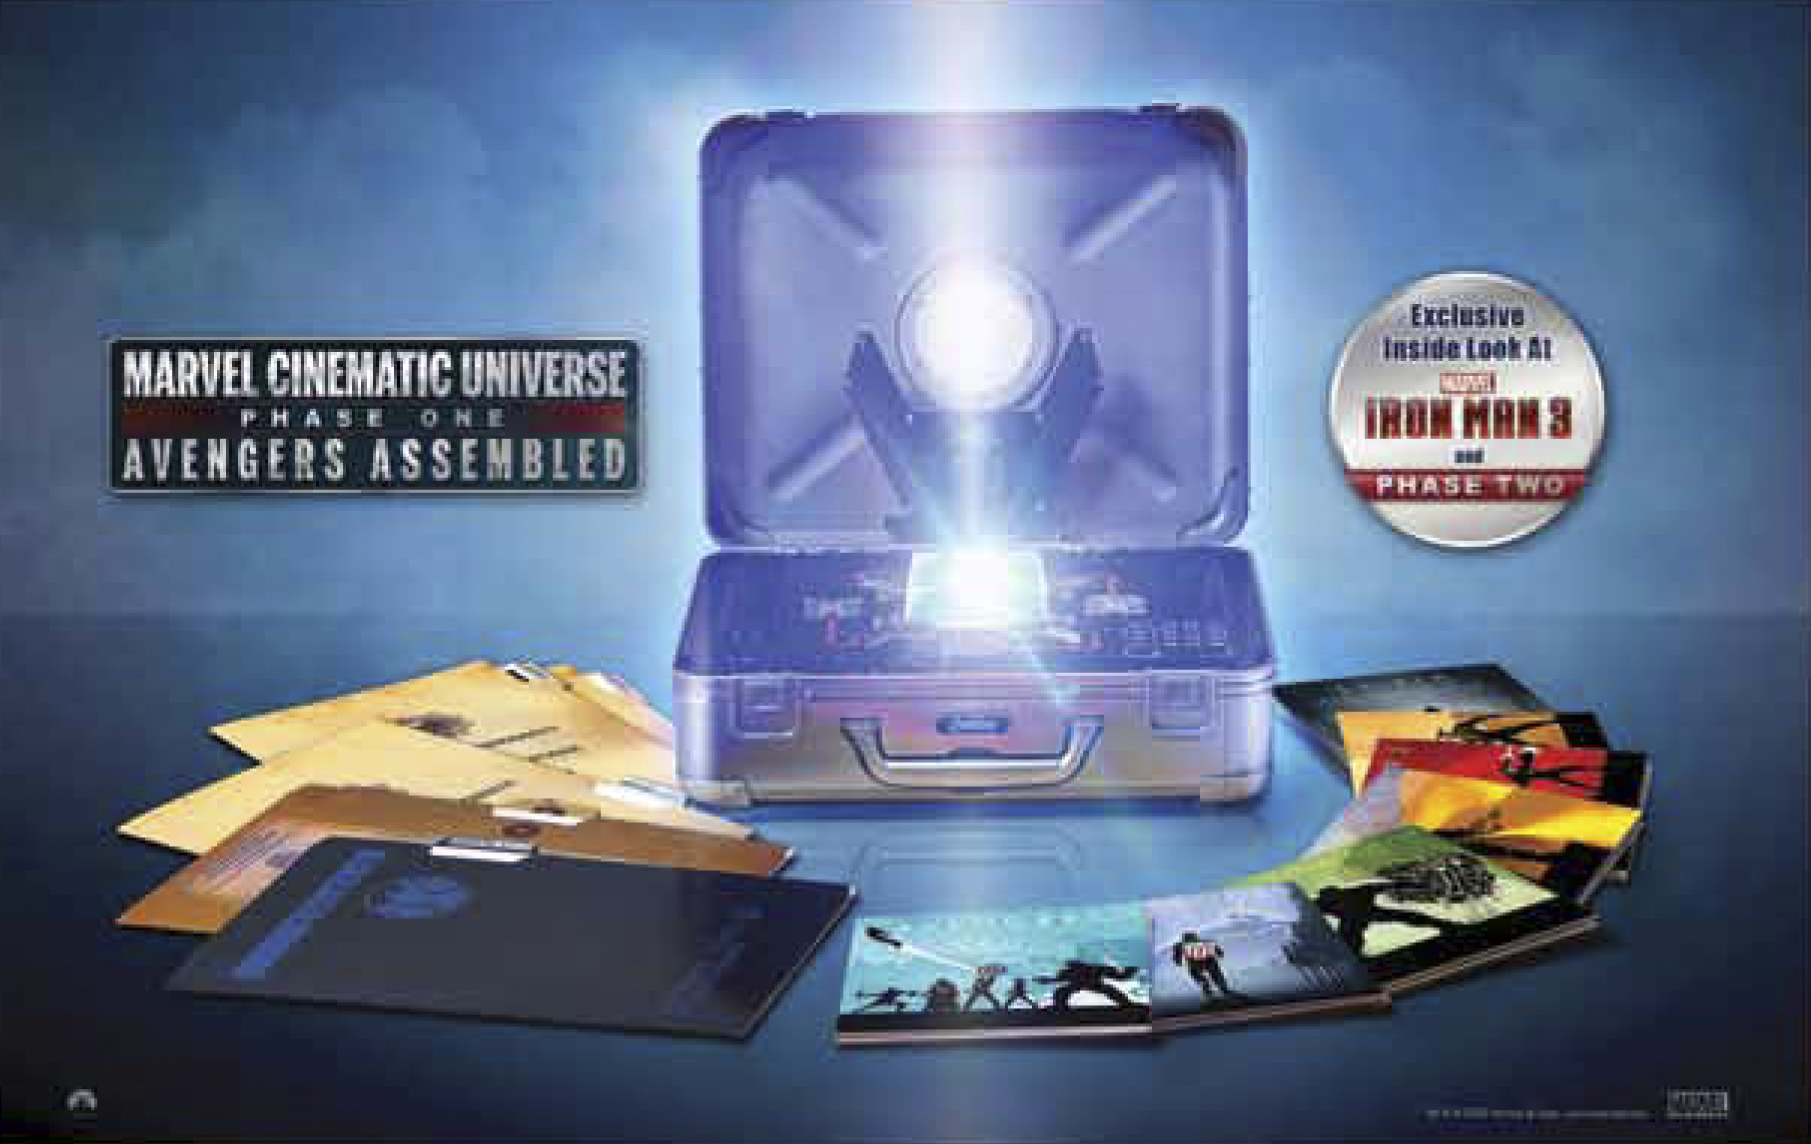 AVENGERS ASSEMBLED BD SET